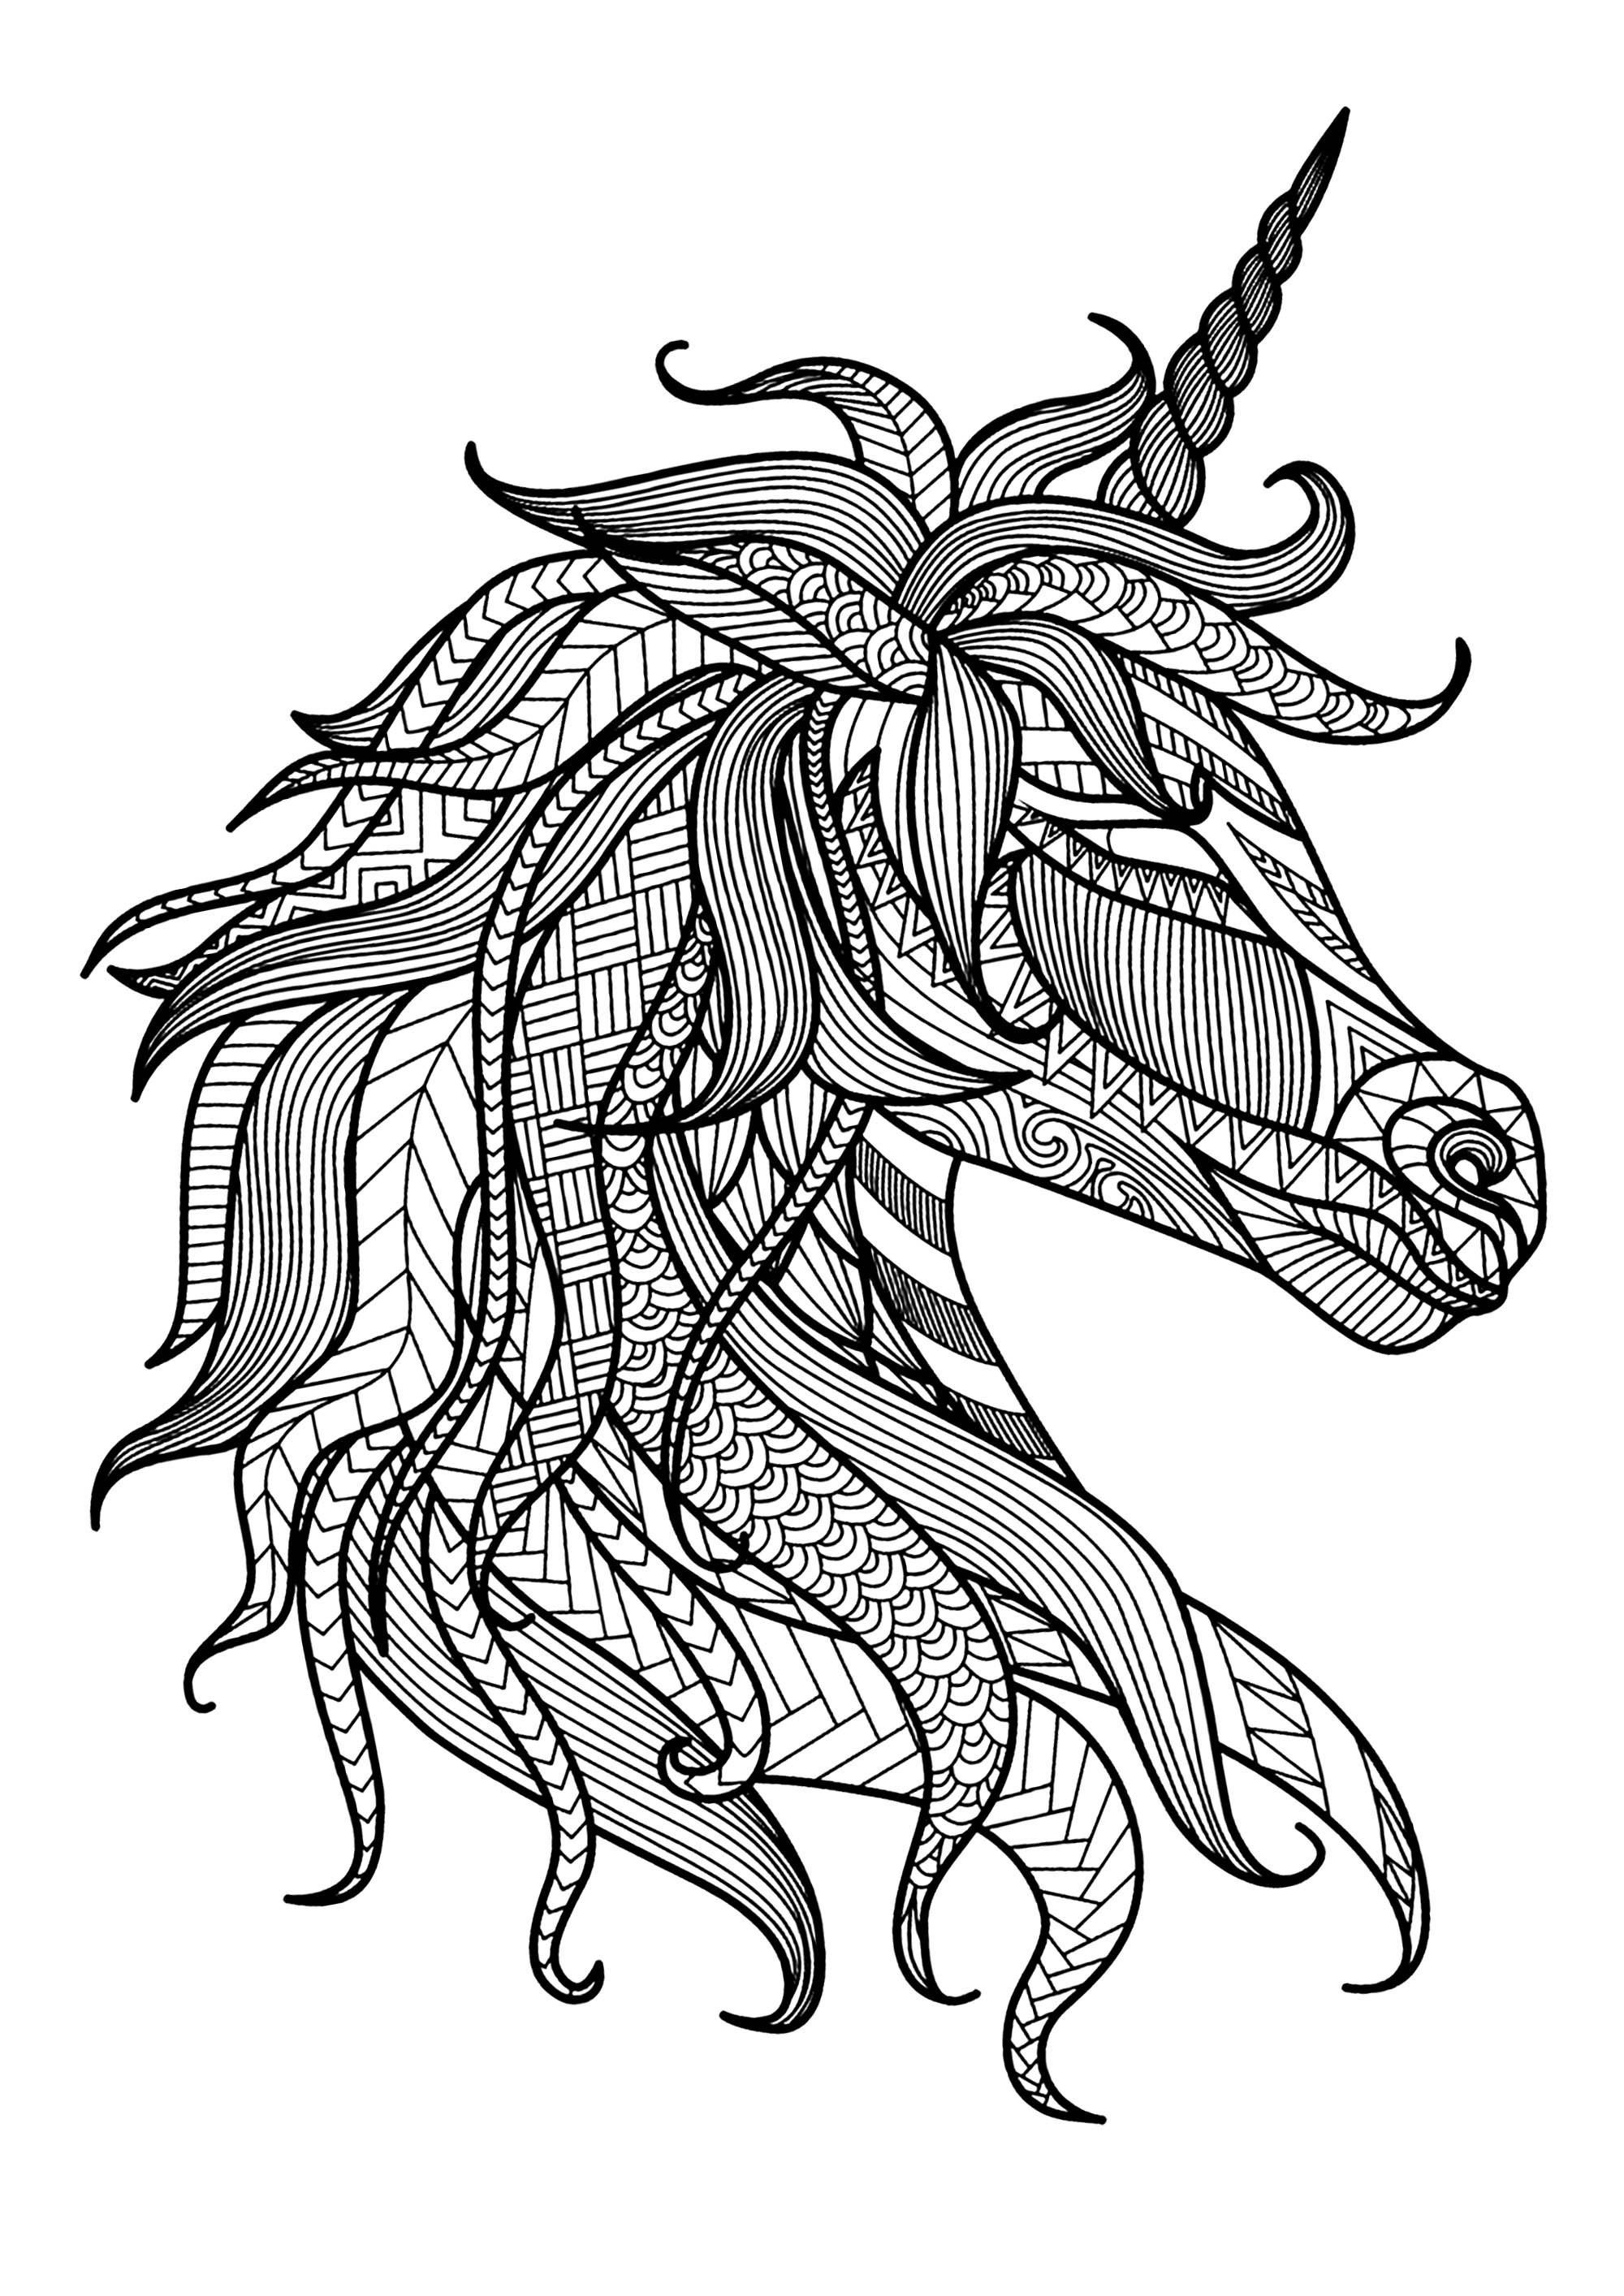 printable unicorn head coloring pages simple unicorn39s head coloring page free printable pages coloring head printable unicorn